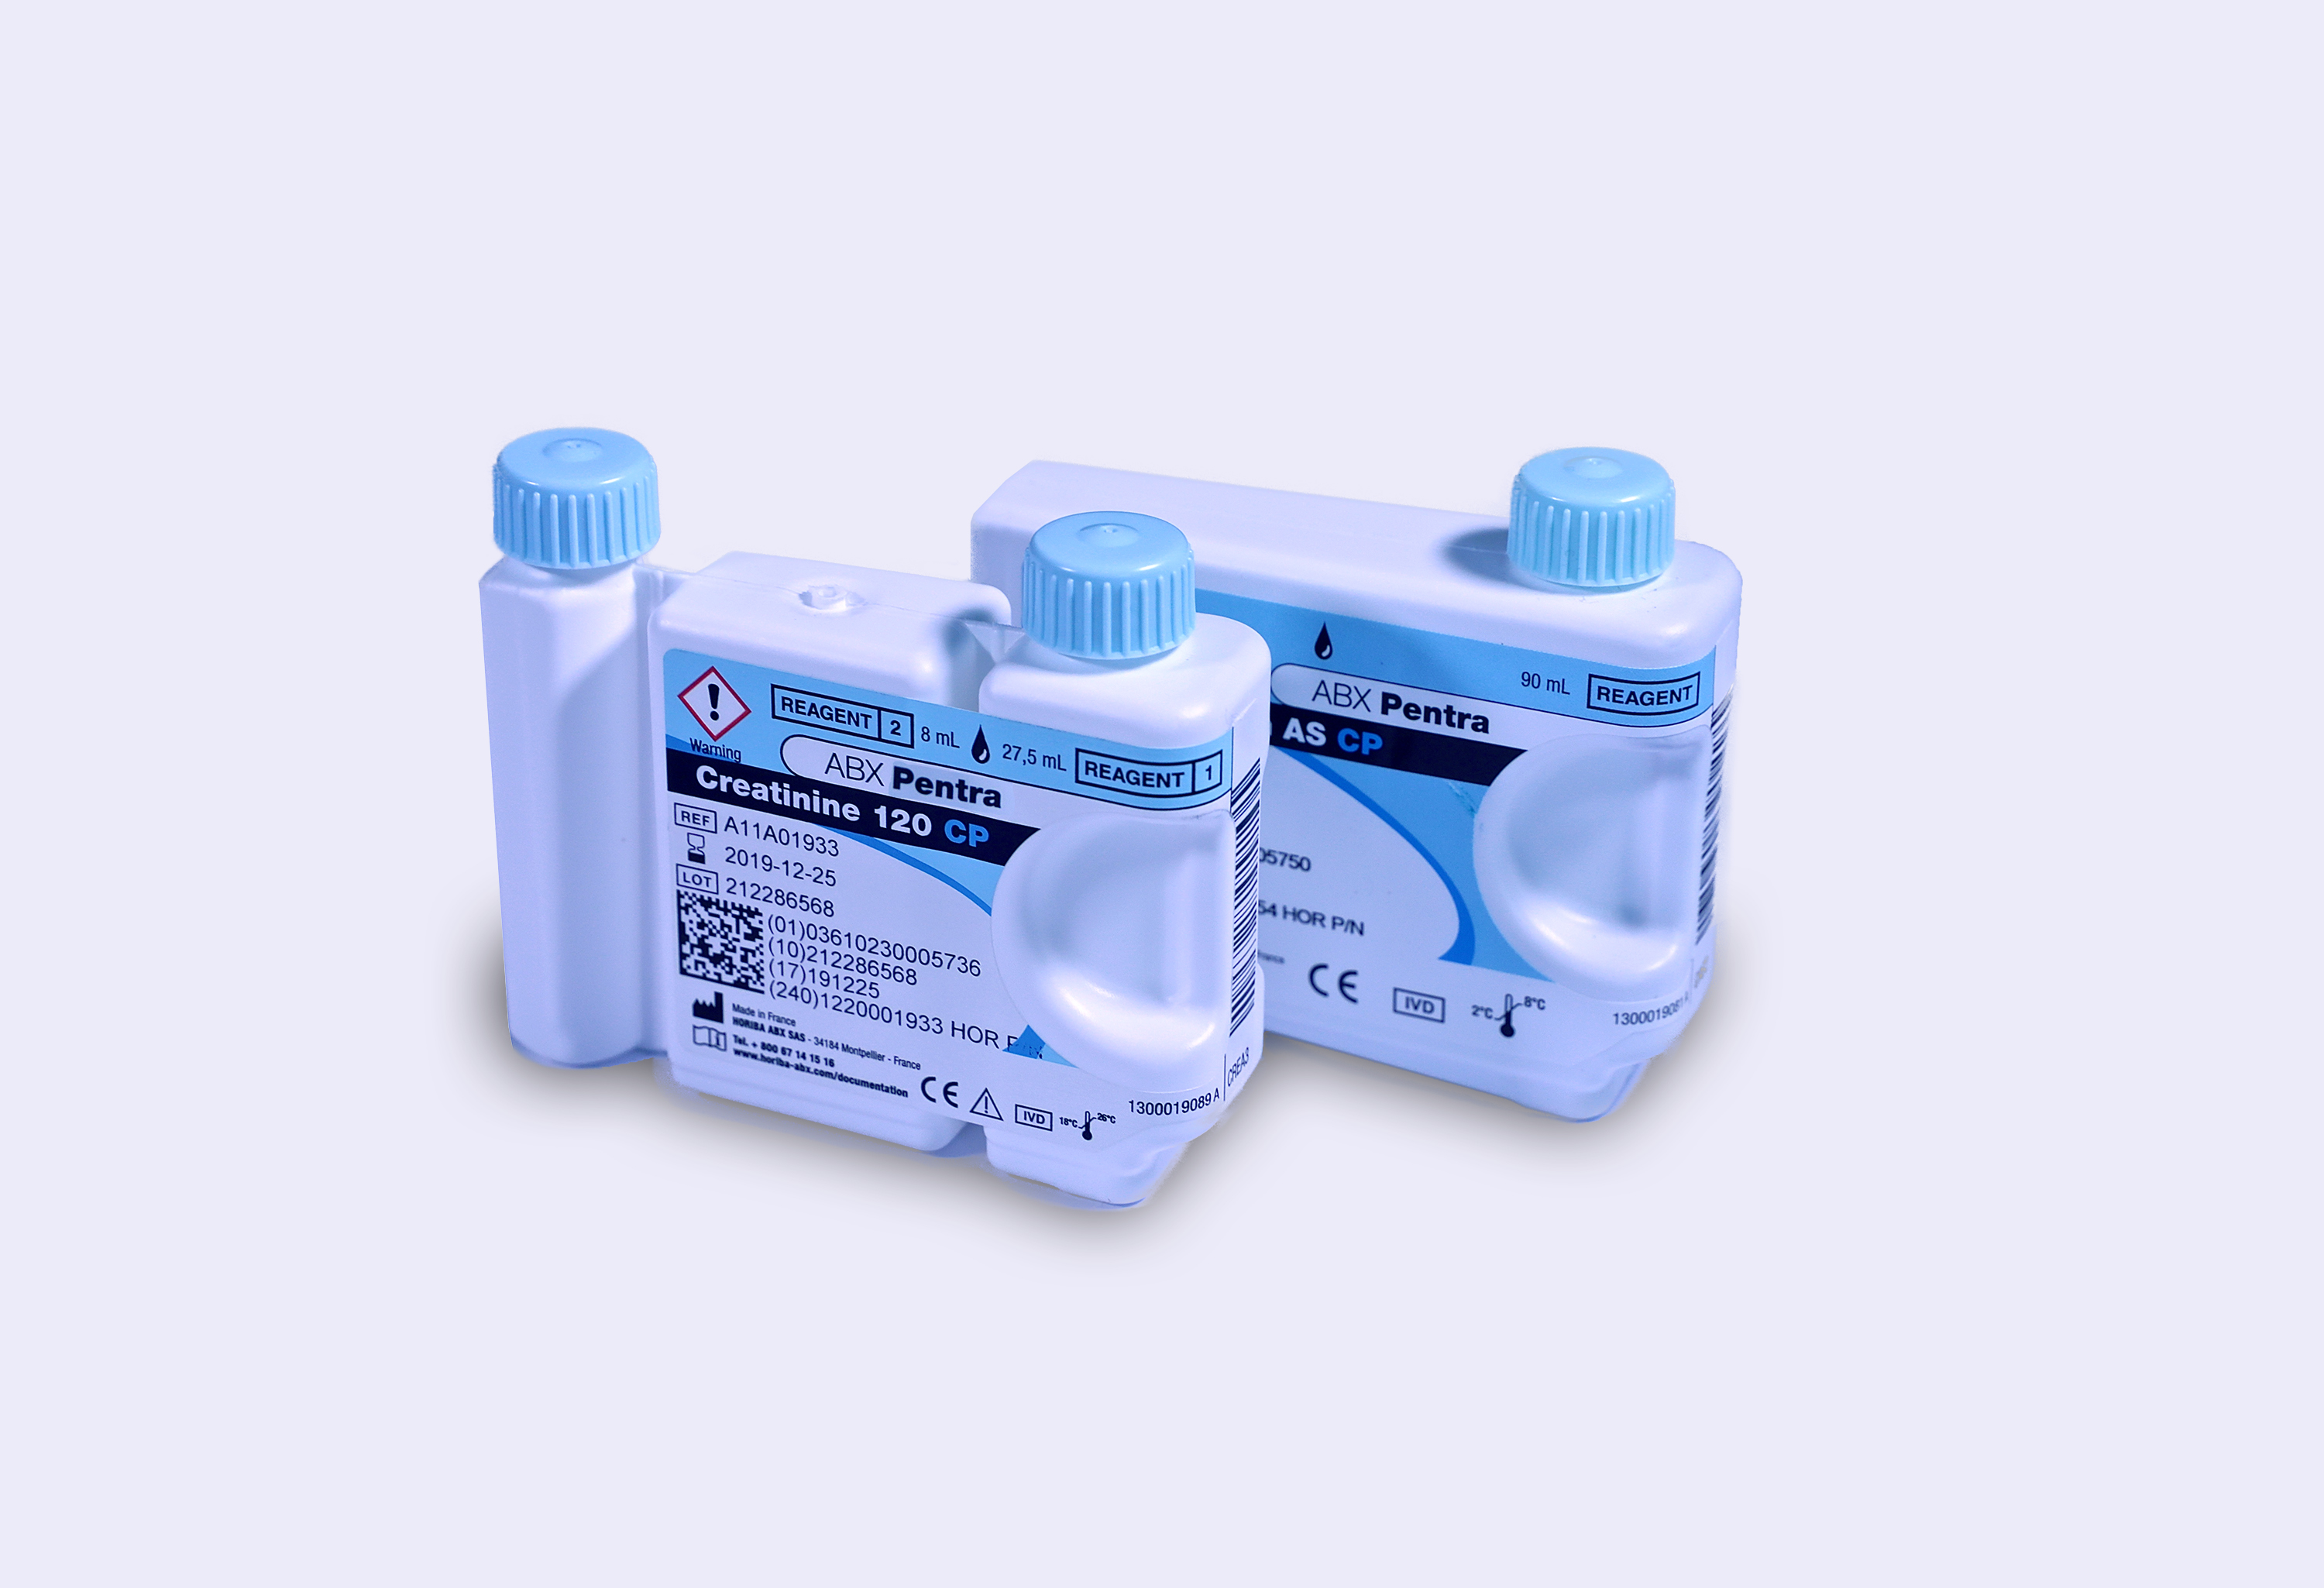 ABX Pentra 400 Reagents